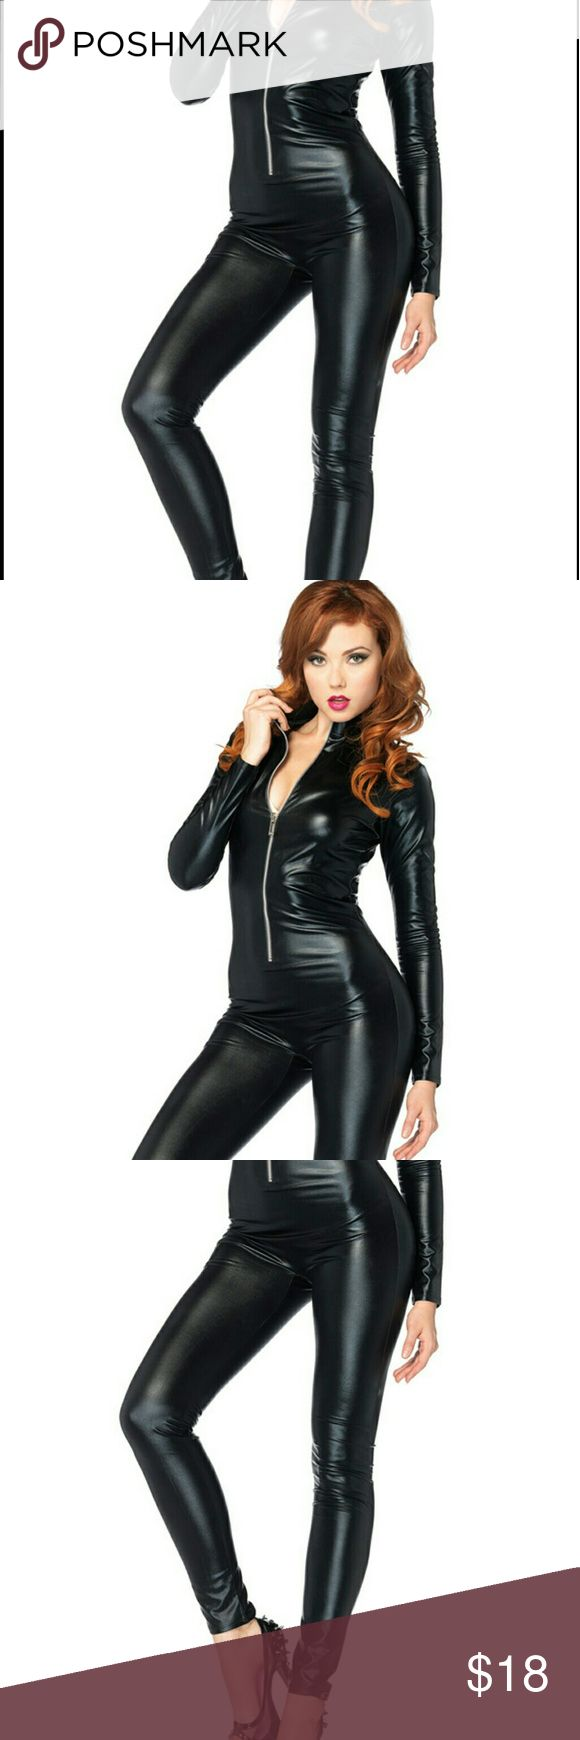 Leg Avenue Black Wet Look Bodysuit/catsuit The possibilities are endless with this black wet look body suit. The skin-tight fit gives this bodysuit seductive appeal and is a great staple for costumes. With a few simple added on accessories, you can turn this body suit into a cat costume or even be a police woman for the night. Zipper front, Brand without tags never worn. Size Medium (has lot stretch) Leg Avenue Intimates & Sleepwear